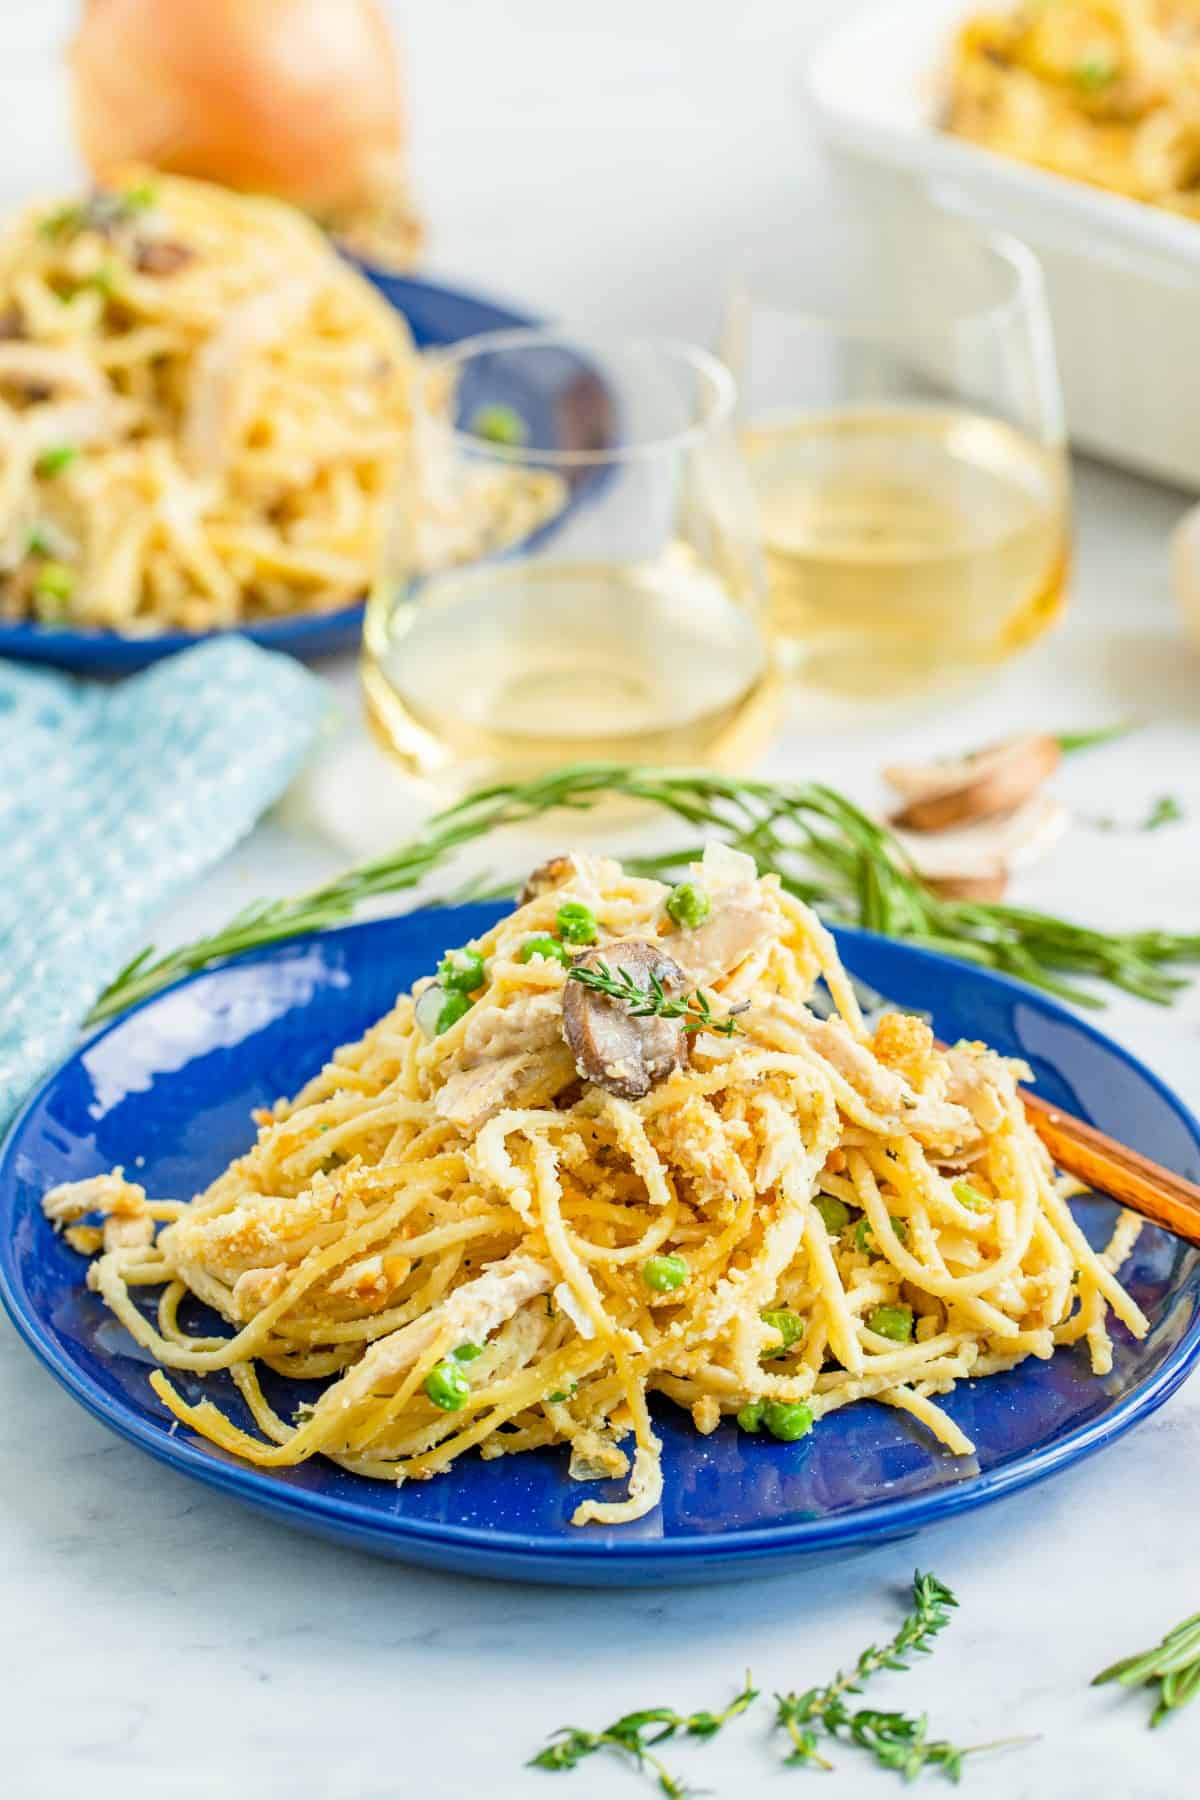 Turkey tetrazzini served on blue dinner plates.